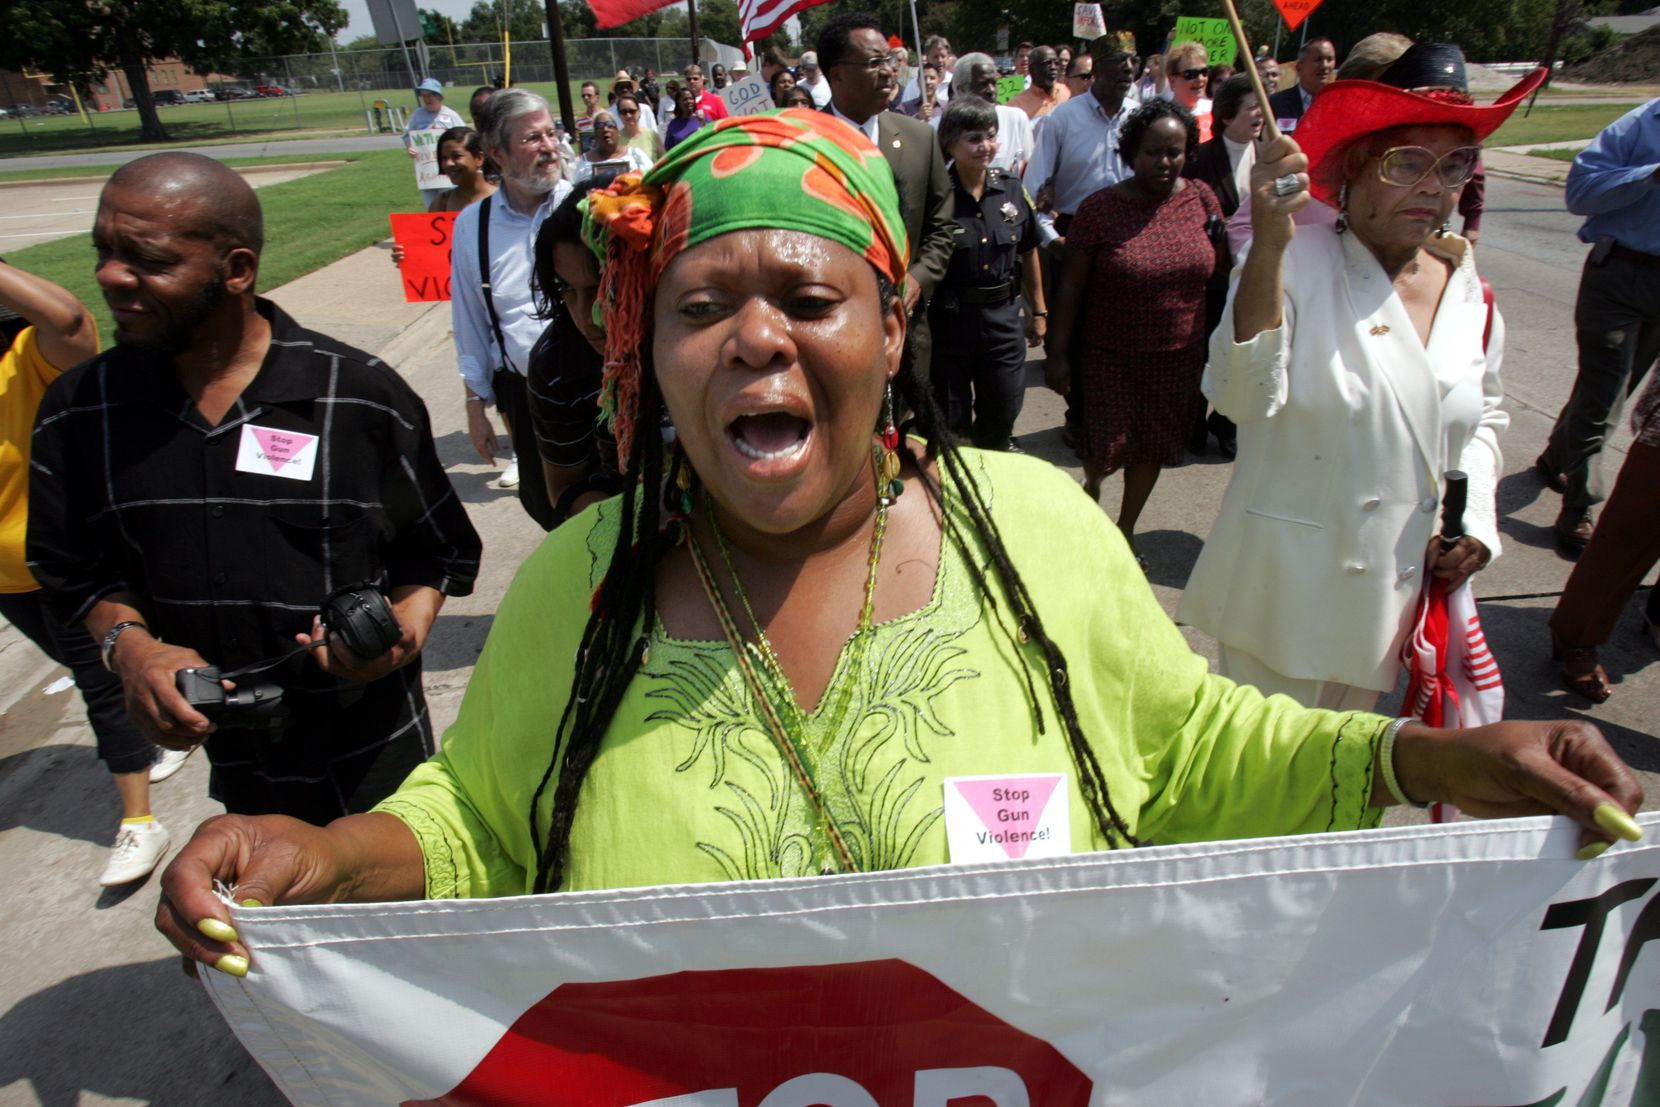 In this August 2007 file photo, Afiah Bey — formerly known as Melody Bell — participates in a March Against Guns in Dallas, months after losing her son Ishmael Mozeke to gun violence.